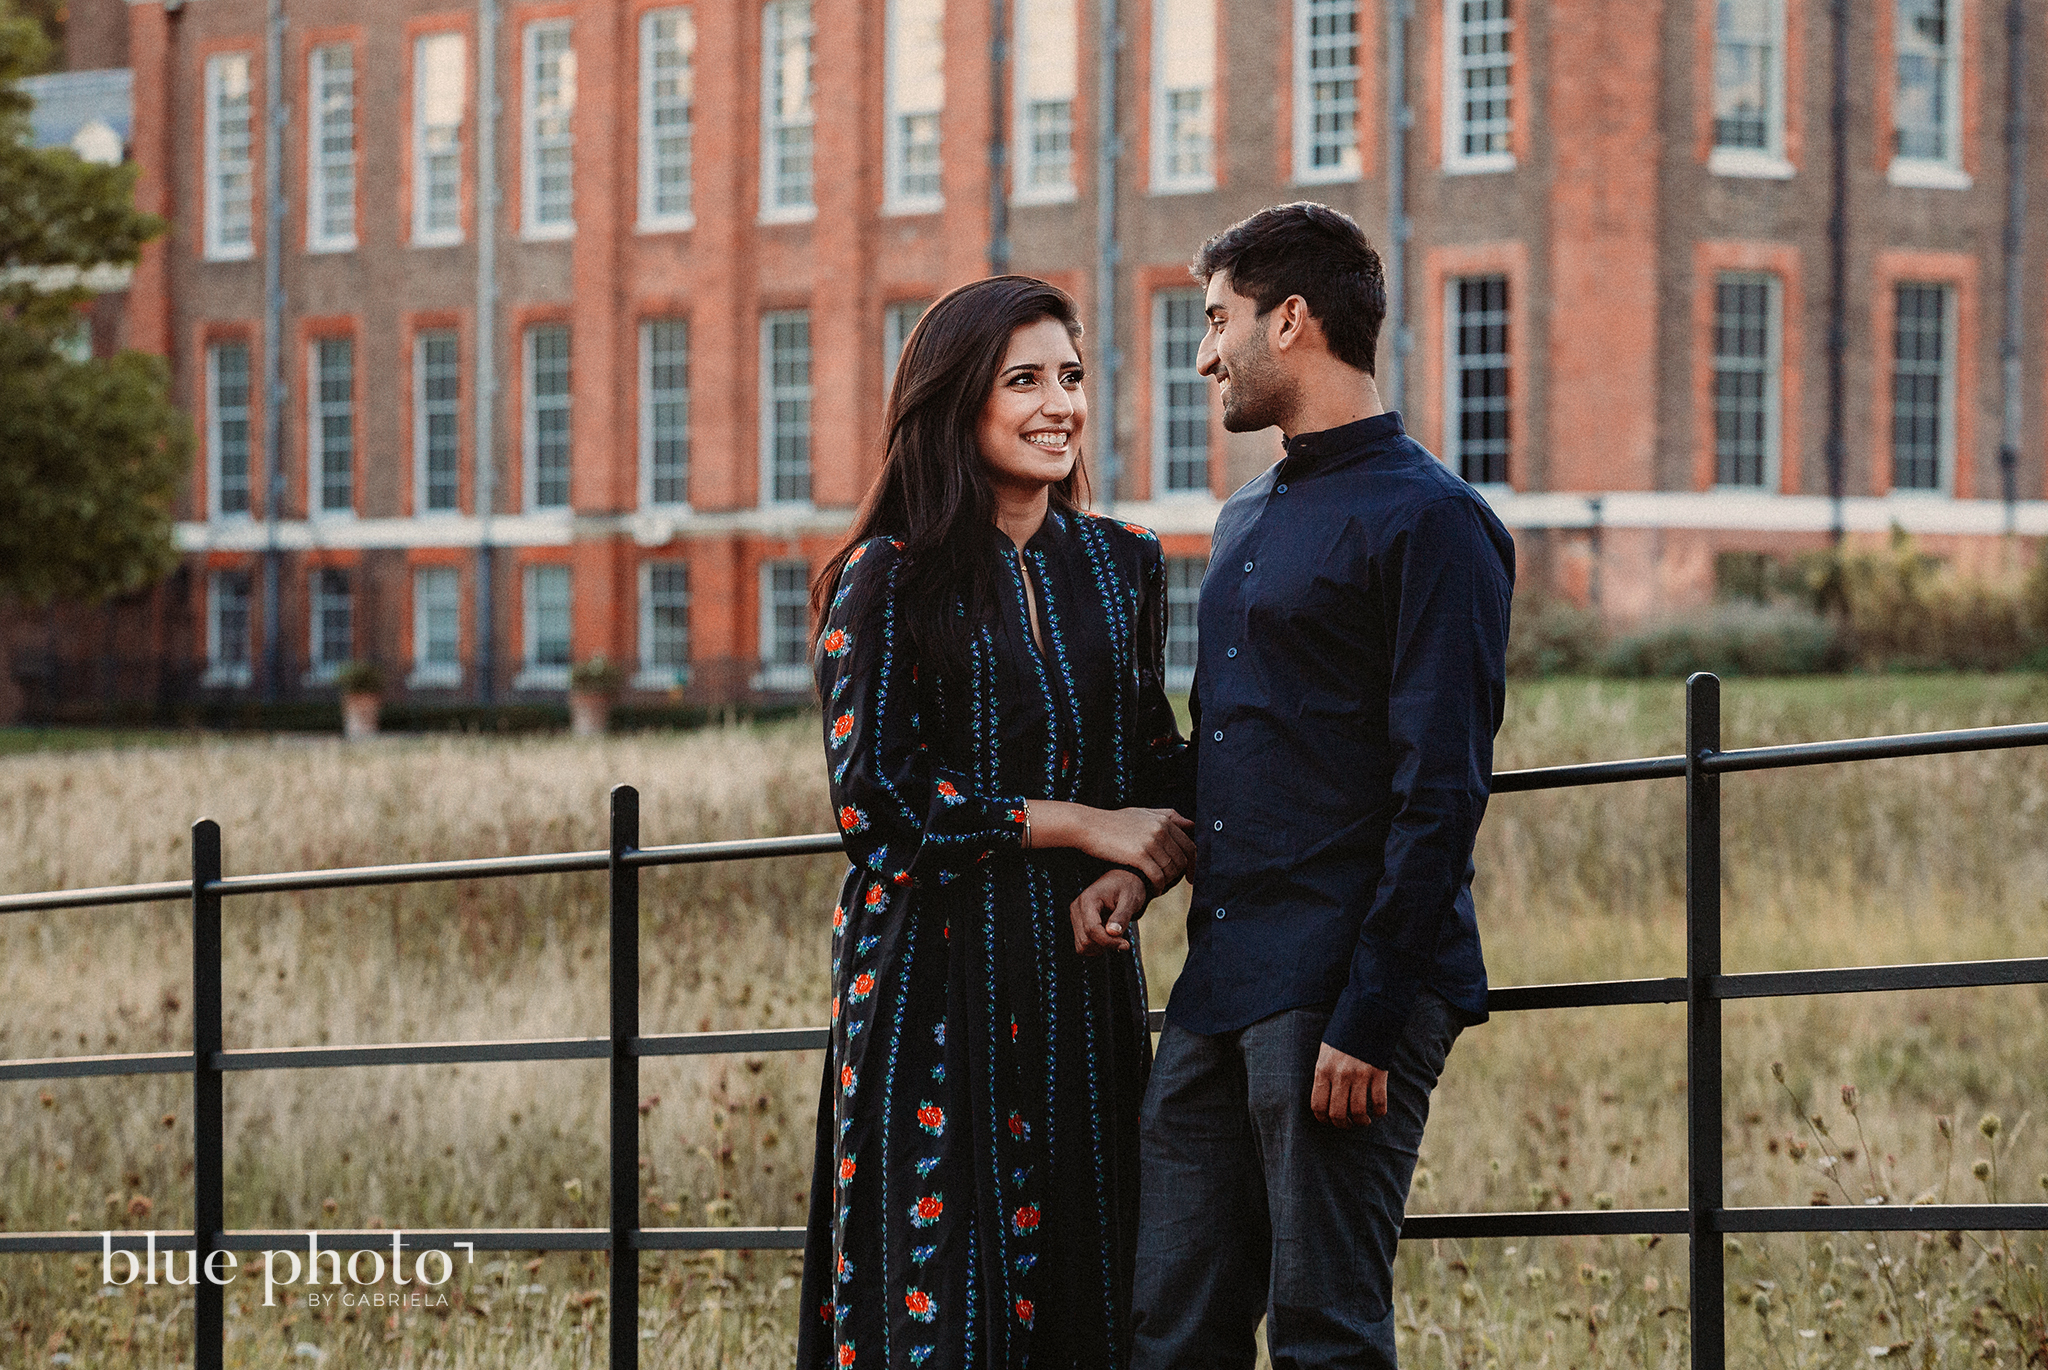 Engagement session in Kensingtom Gardens, Central London. A couple is looking at each other and smilling.